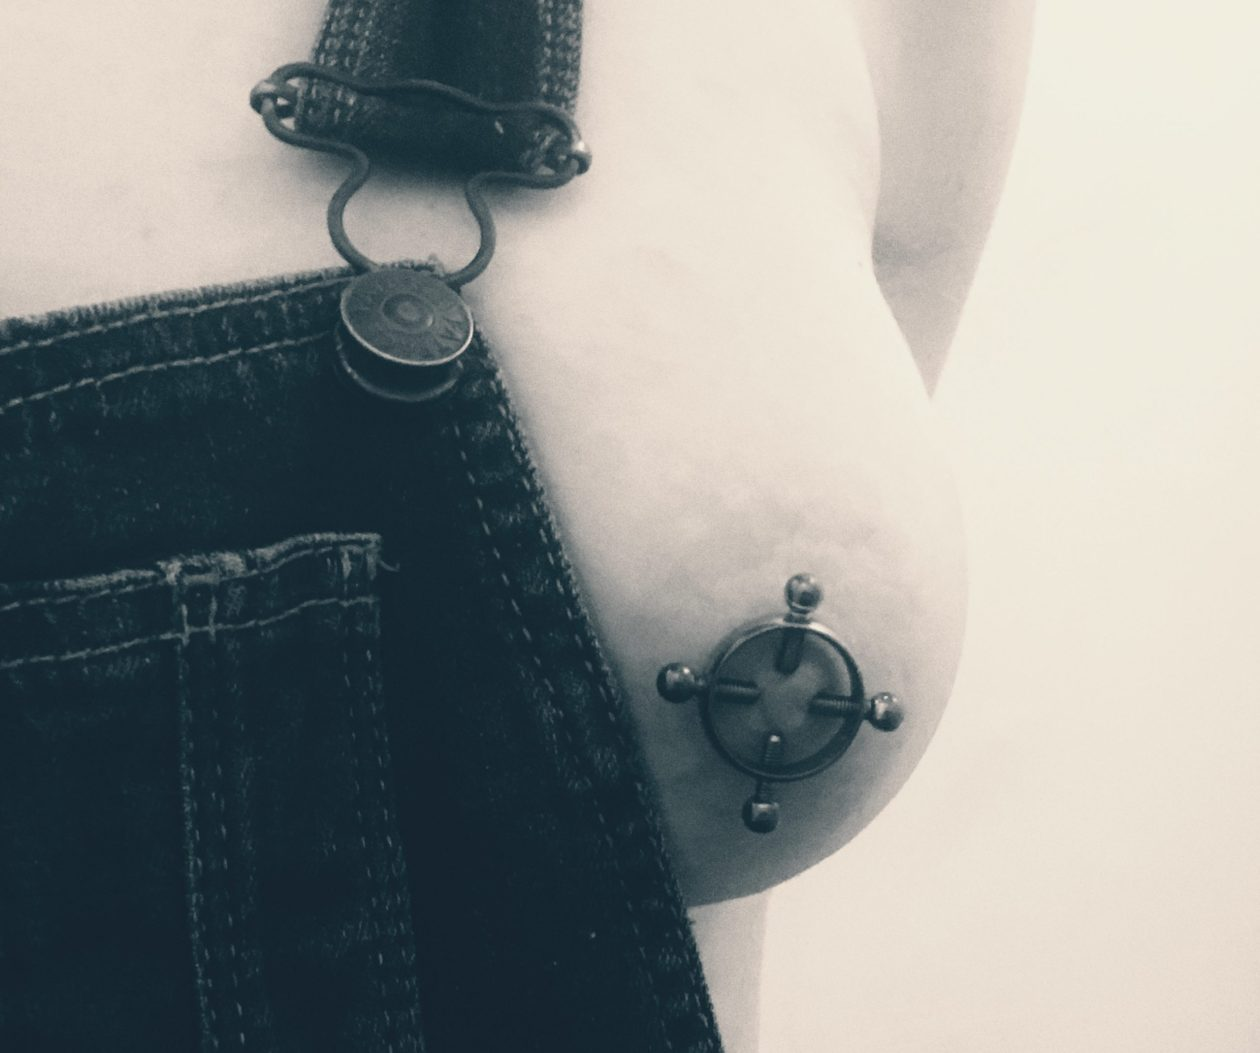 Dungarees are pulled aside to expose a nipple with a temporary piercing on it. Photo.